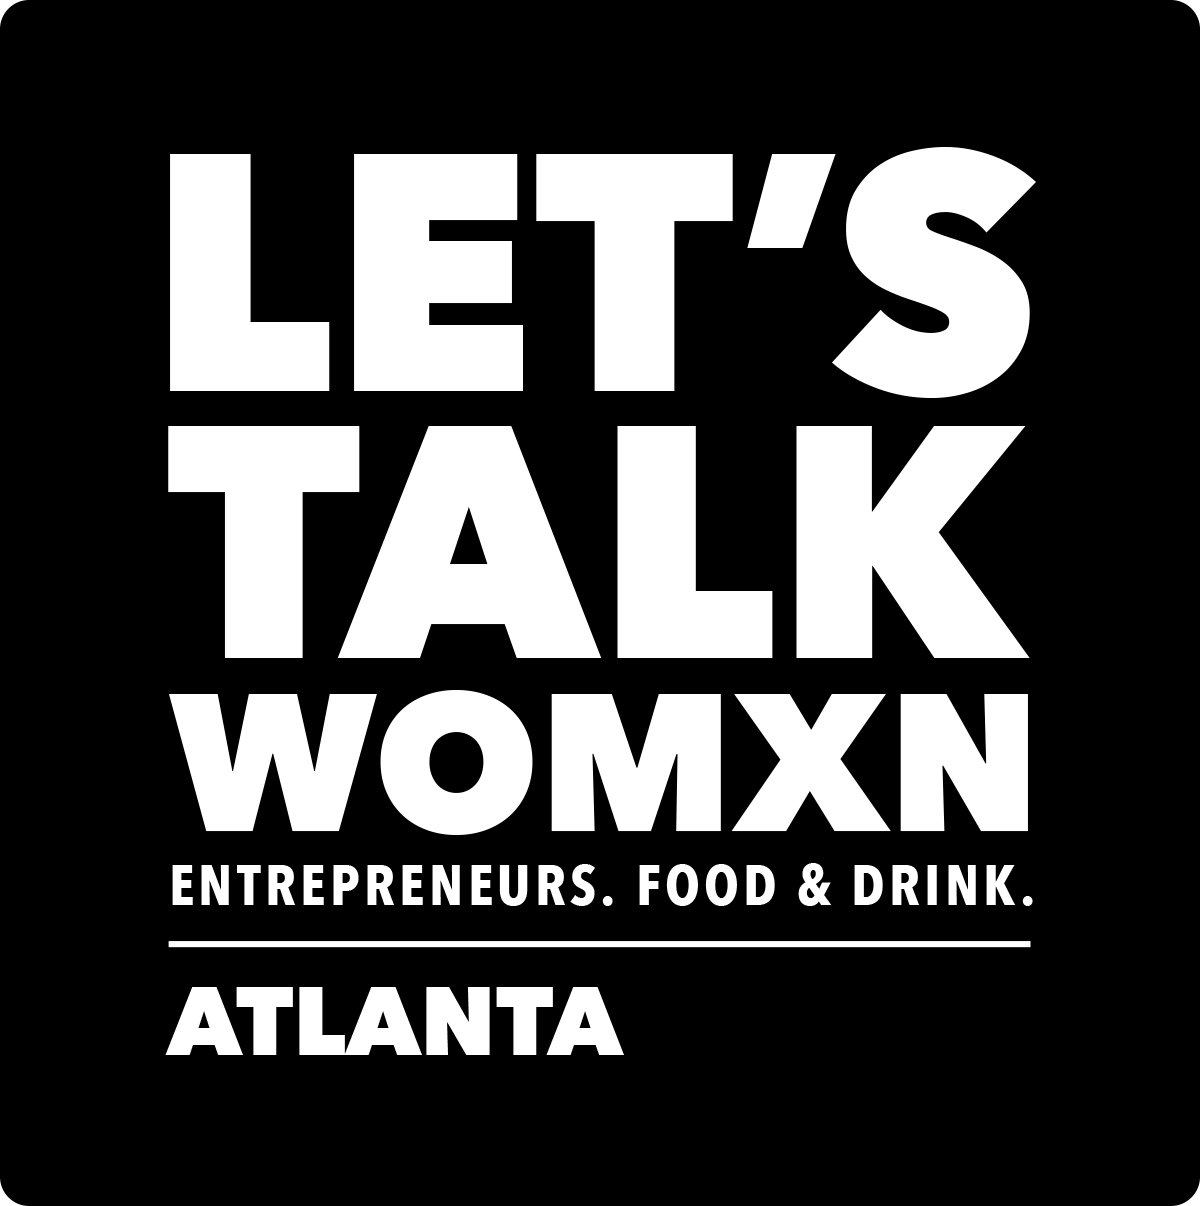 Let's Talk Womxn - Atlanta